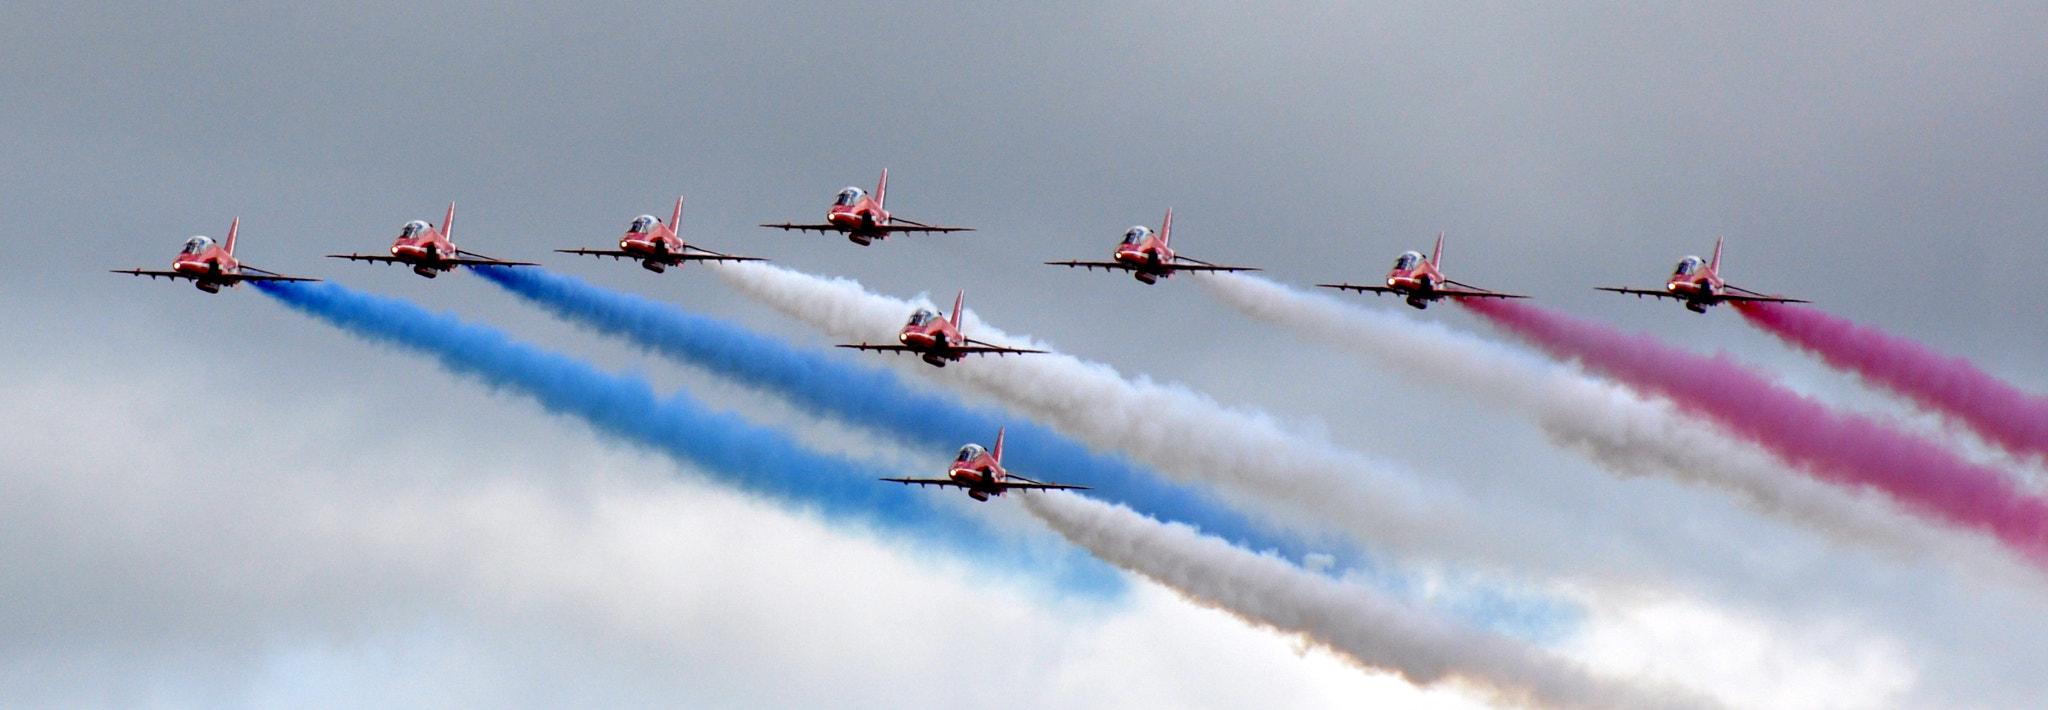 Photograph Red Arrows by Rob Hays on 500px